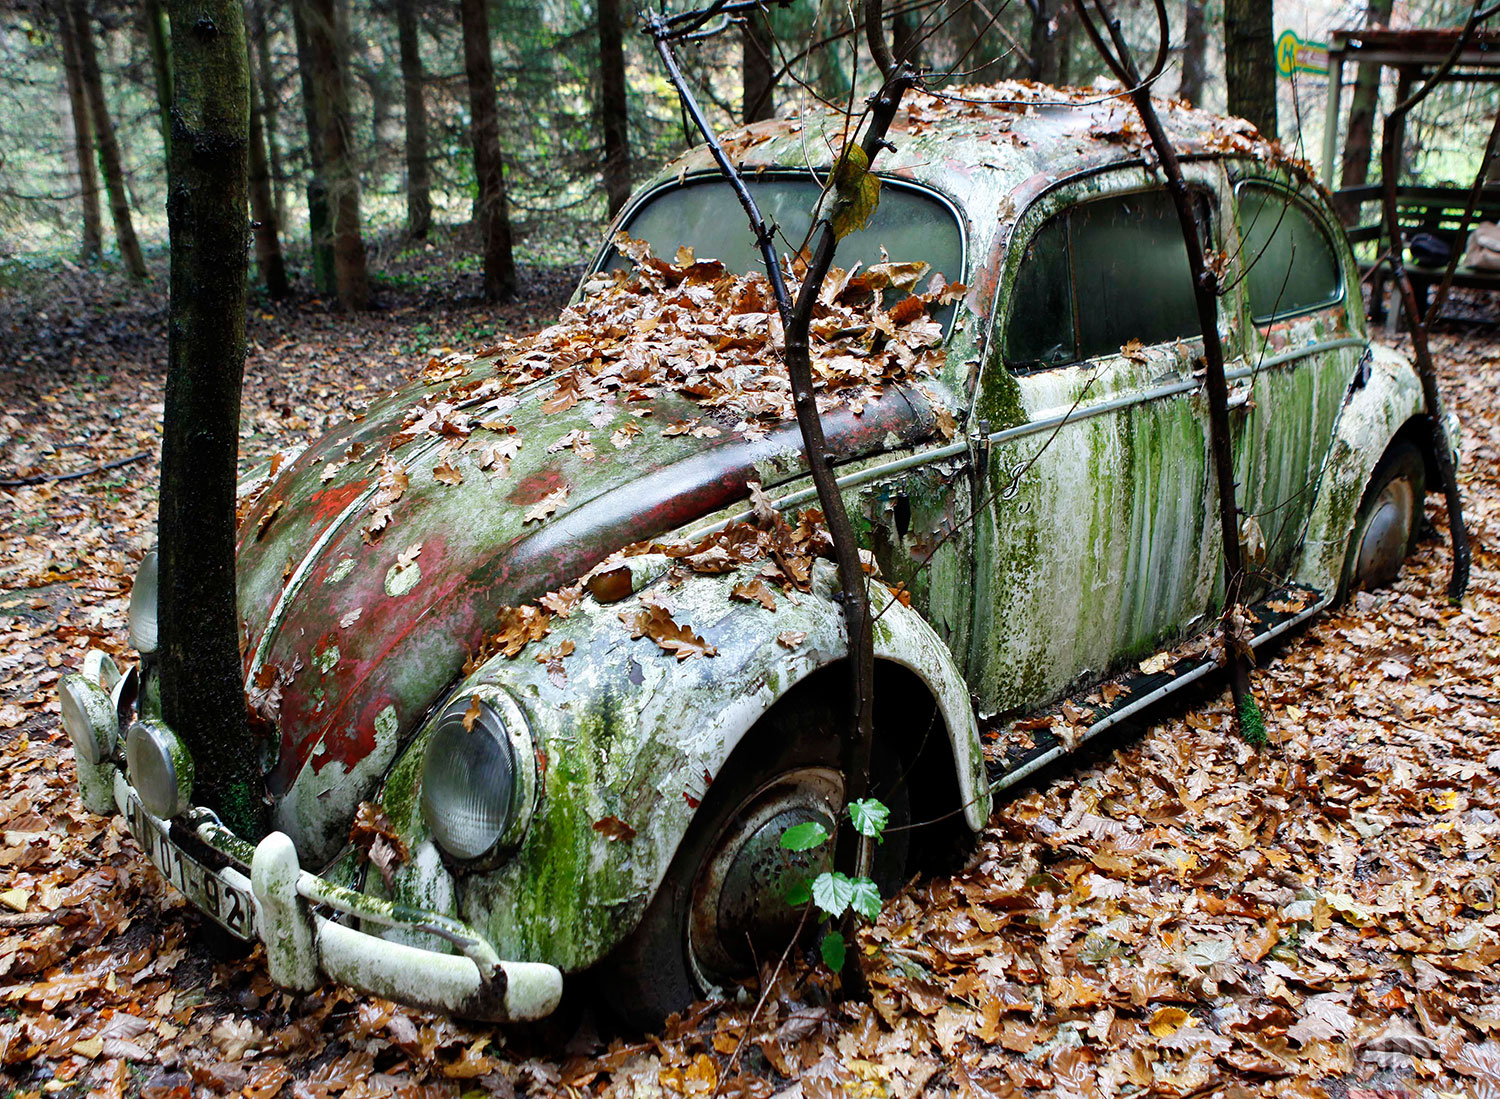 An old Volkswagen Beetle is seen in the garden of Otto Weymann in Fuldatal near Kassel, central Germany, Nov. 9, 2009. (AP Photo/Michael Probst)